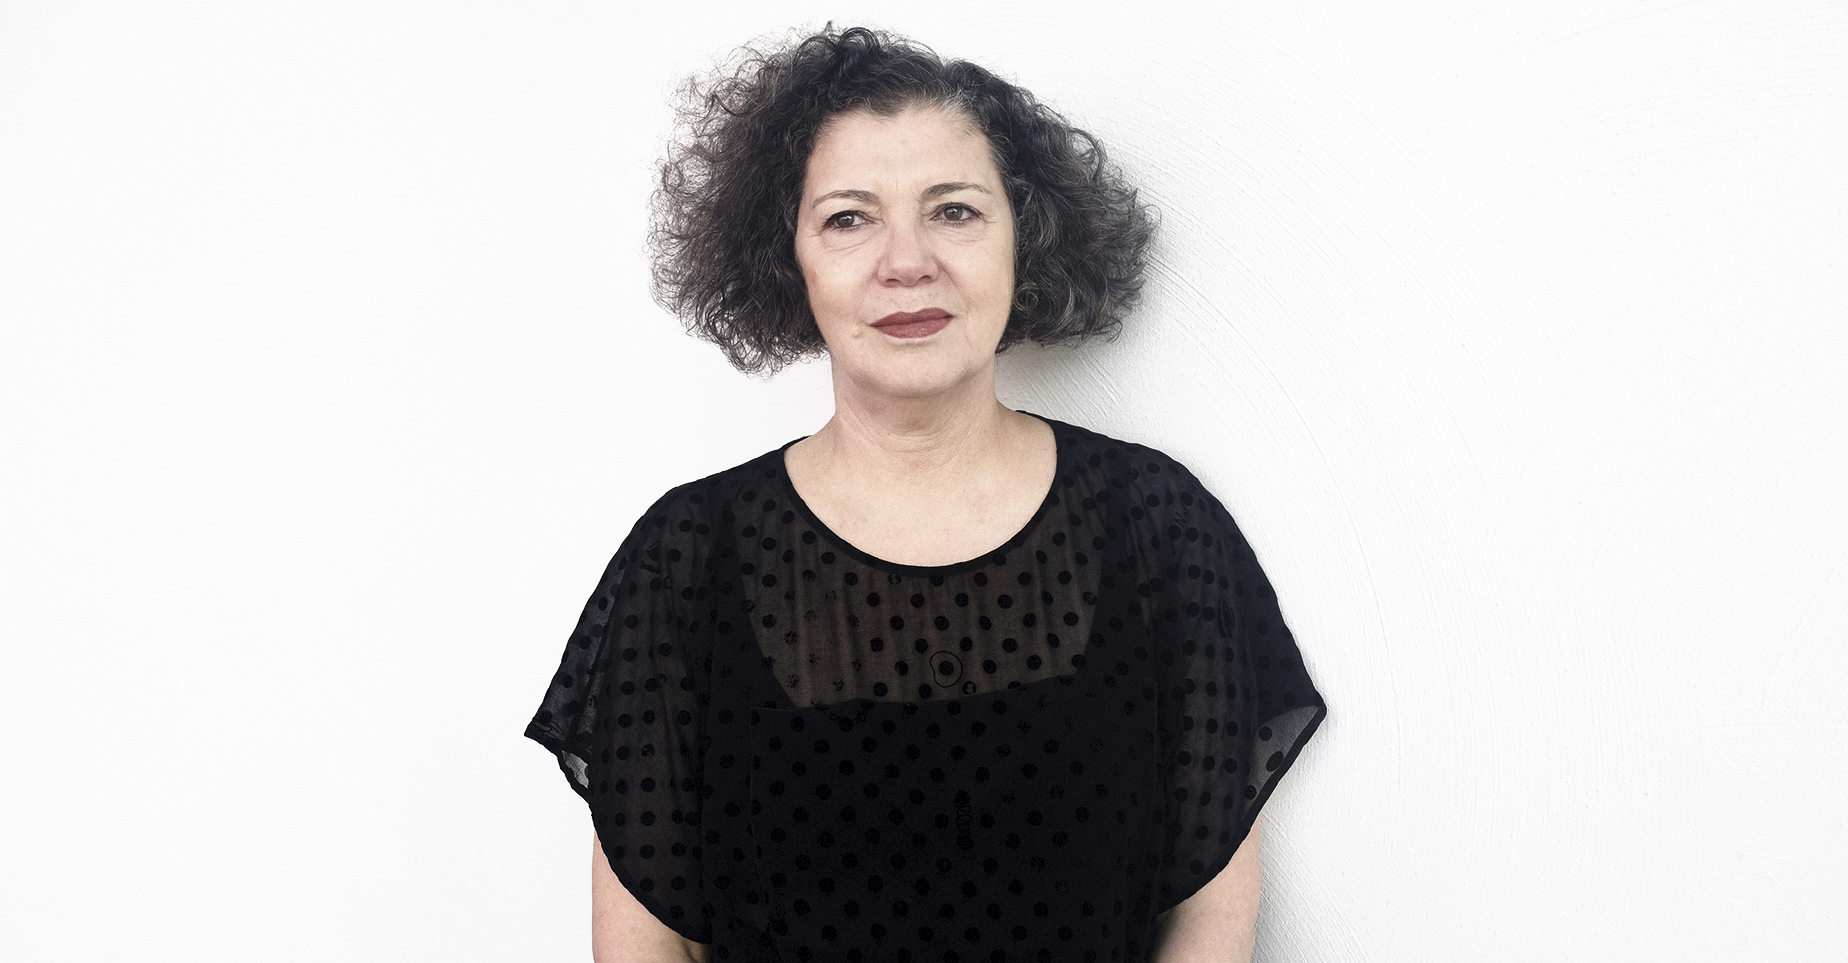 mona hatoum essay Mona hatoum was born in beirut to palestinian family in 1952 she lives in london in the late 1980s she began to make installations and sculptures in a wide range of materials these often use the grid or geometric forms to reference to systems of control within society she has made a number of.